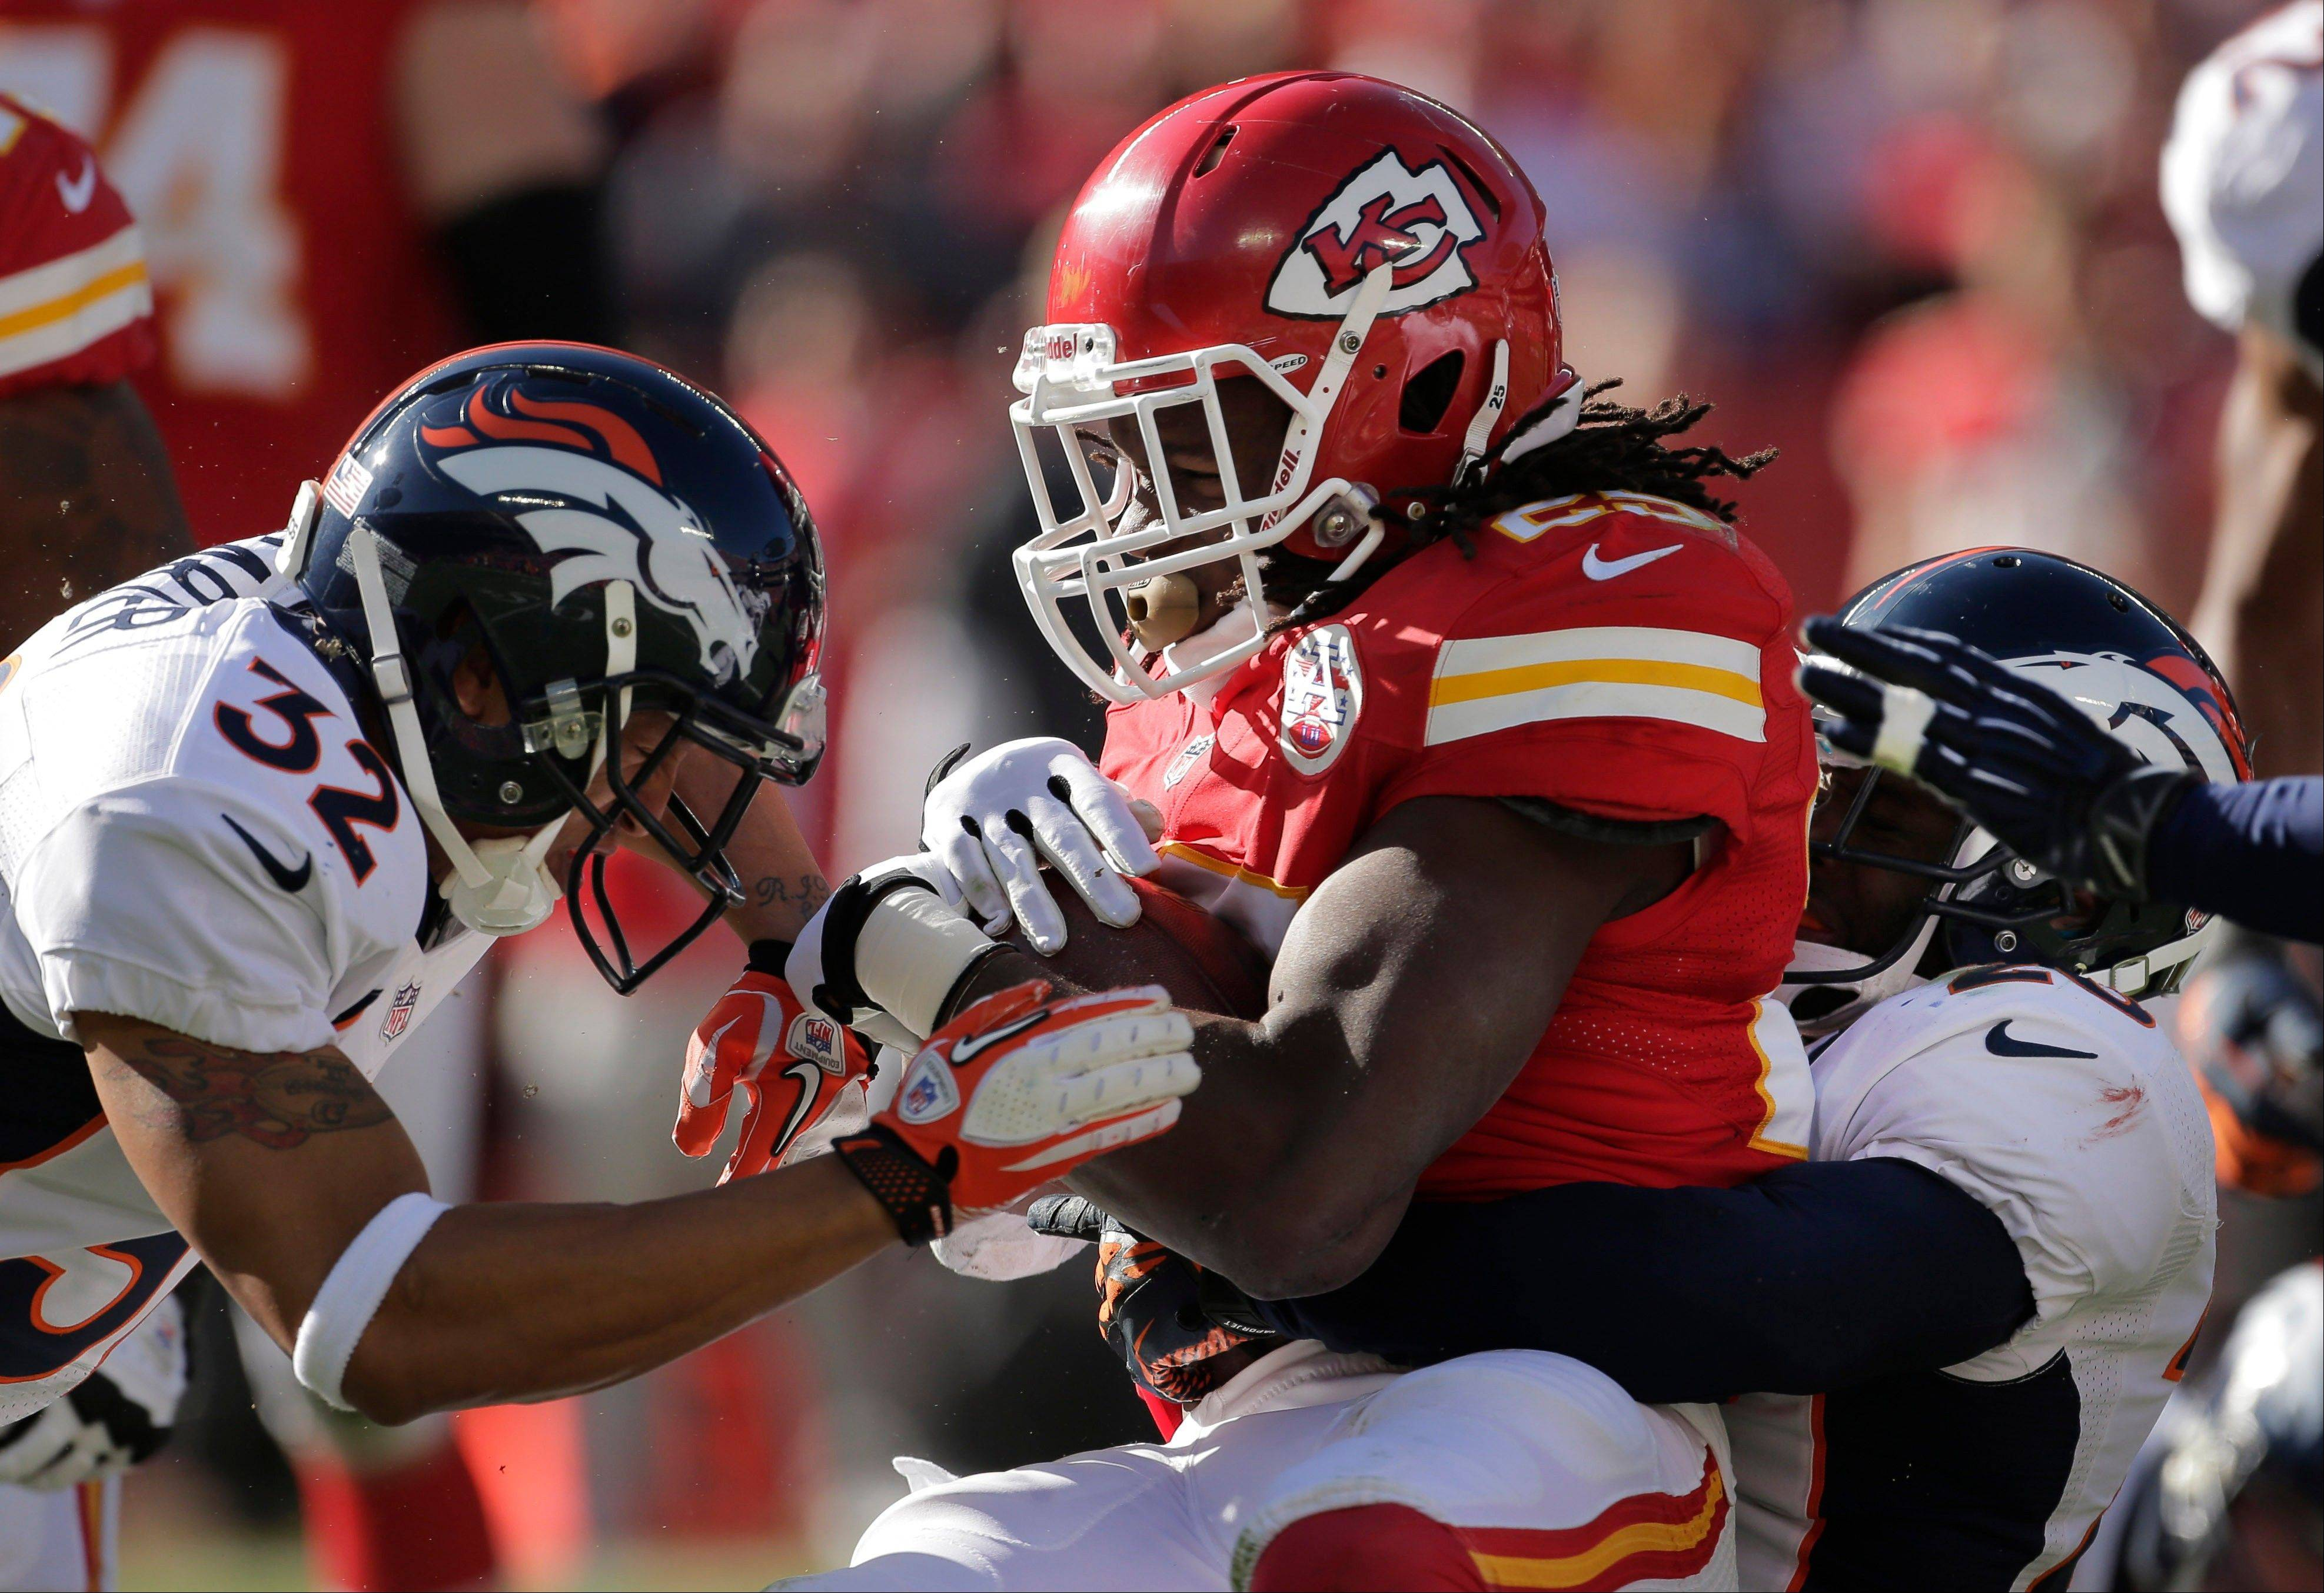 Kansas City Chiefs running back Jamaal Charles is tackled by Denver Broncos strong safety Mike Adams, right, and defensive back Tony Carter (32) Sunday during the first half at Arrowhead Stadium in Kansas City, Mo. harles has caused a stir after asking for Broncos quarterback Peyton Manning's autograph following the game.